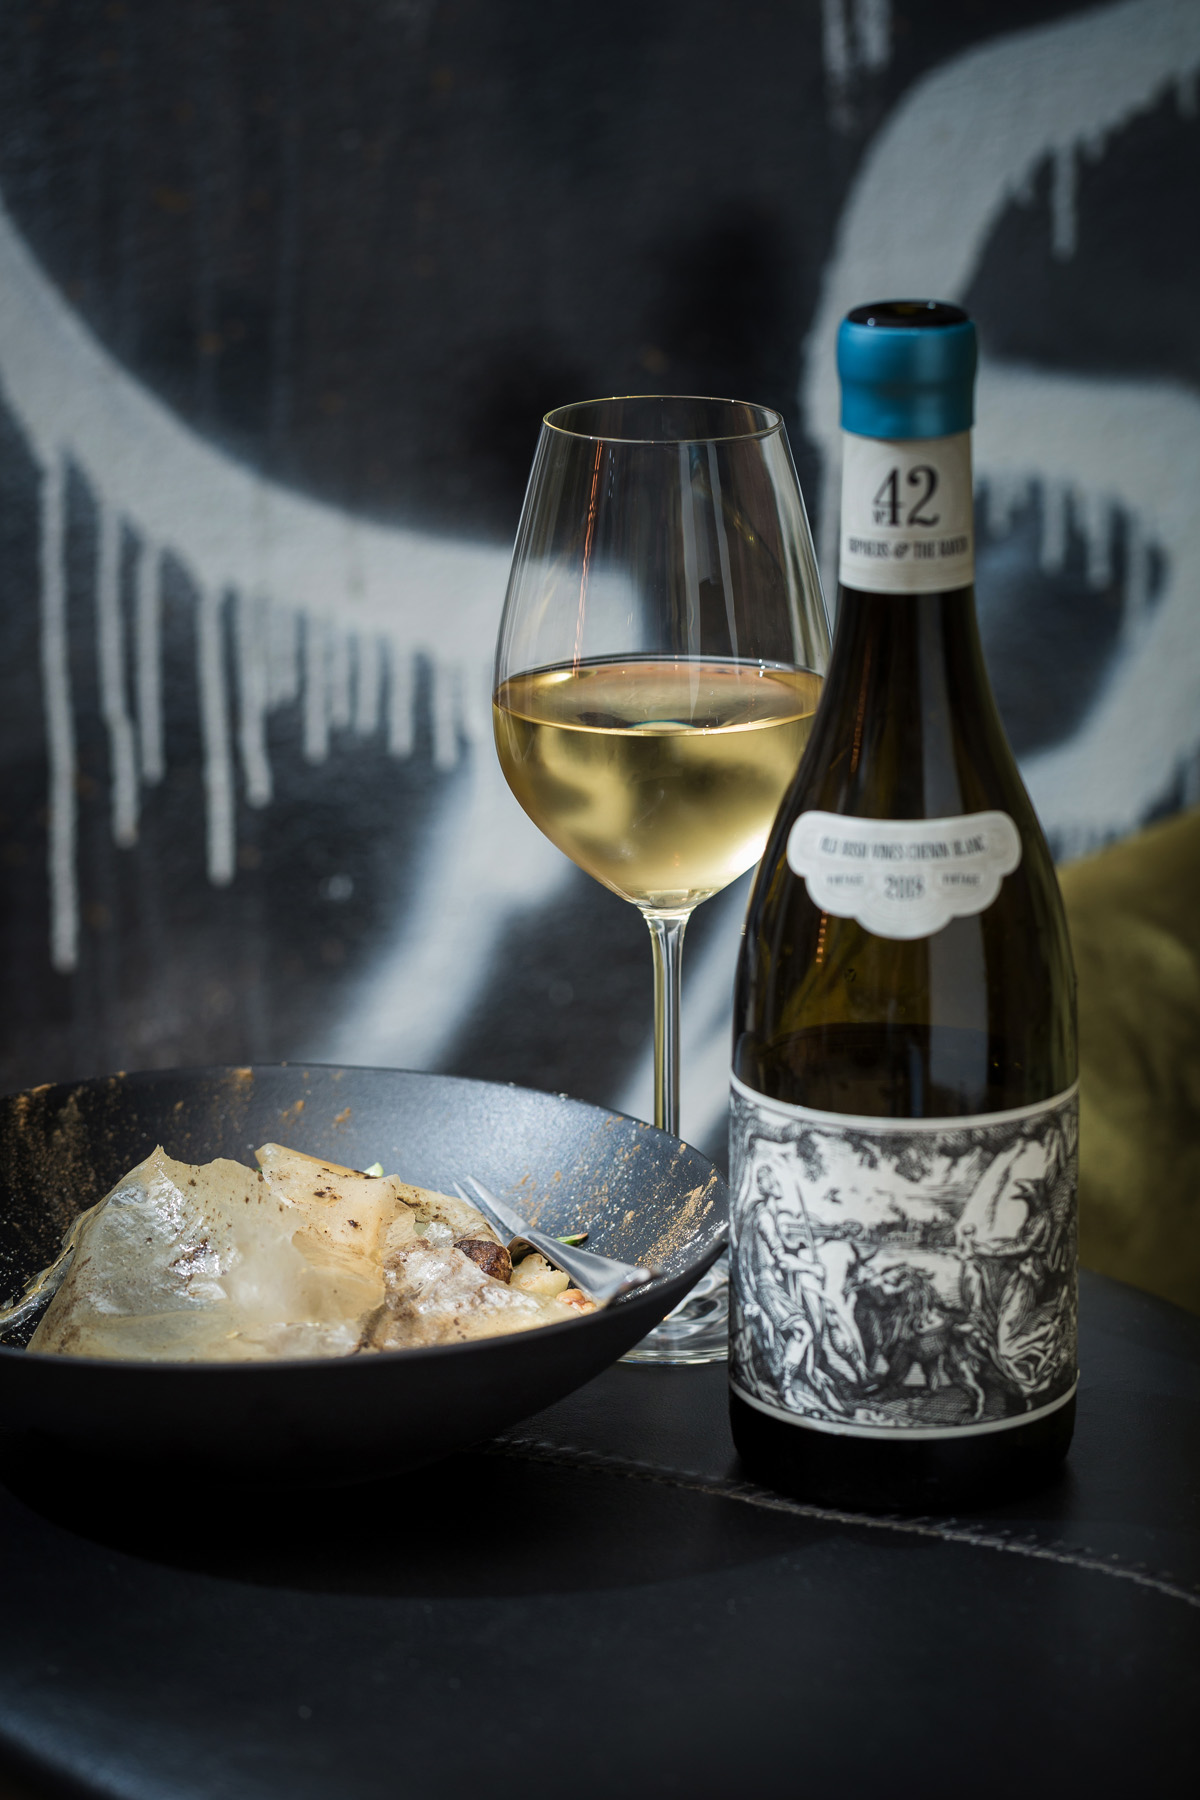 Orpheus & The Raven – The Expression of Art and Wine